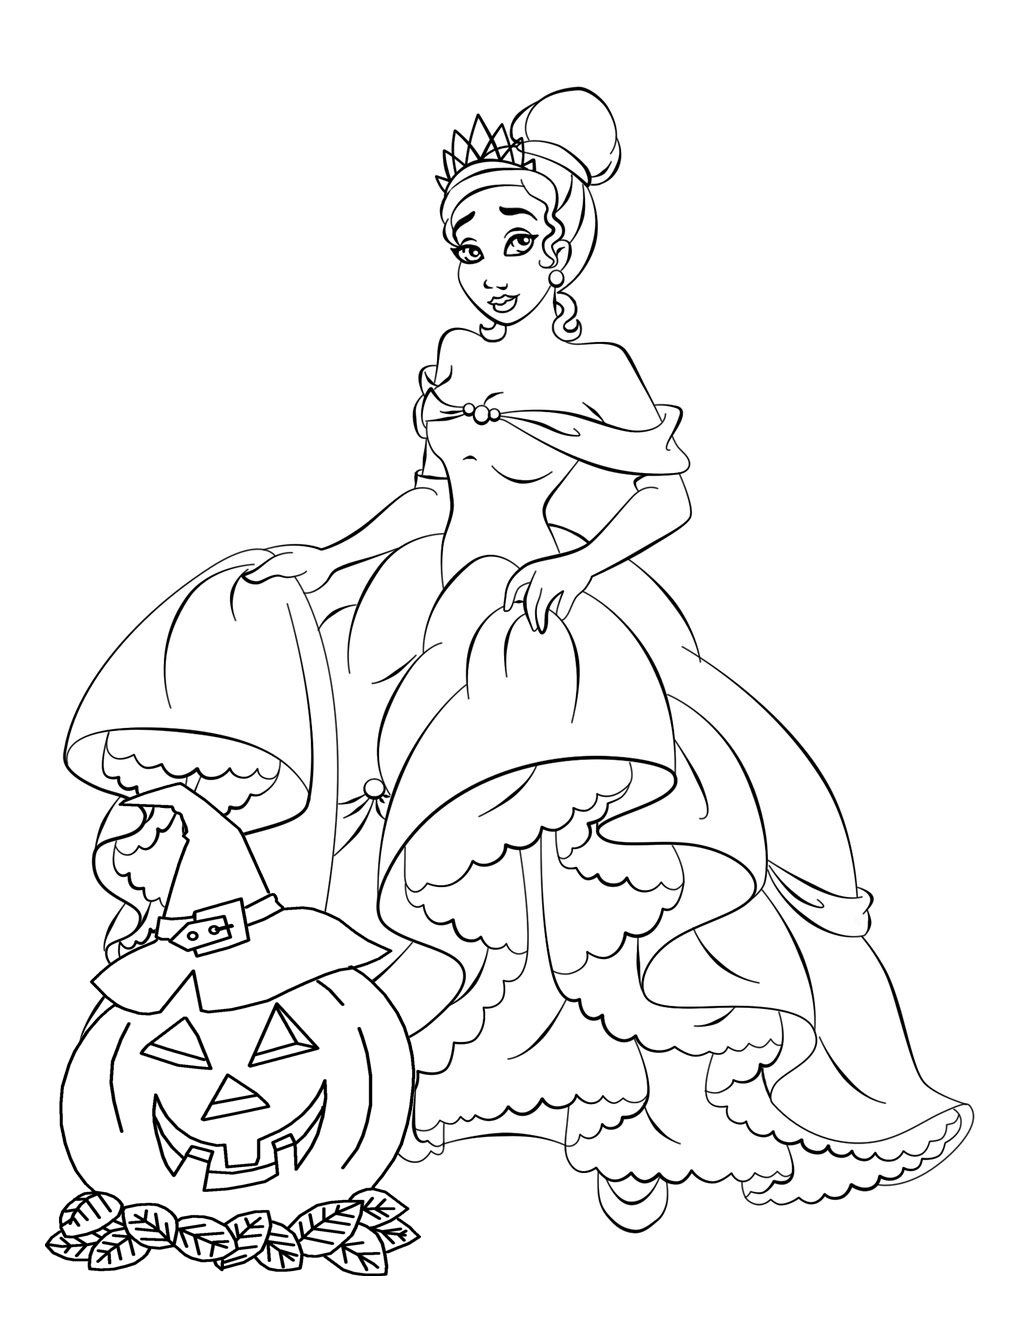 Free coloring pages disney princesses - It Looks Like You Re Interested In Our Coloring Online Disney We Also Offer Many Different Princess Coloring Pages On Our Site So Check Us Out Now And Get